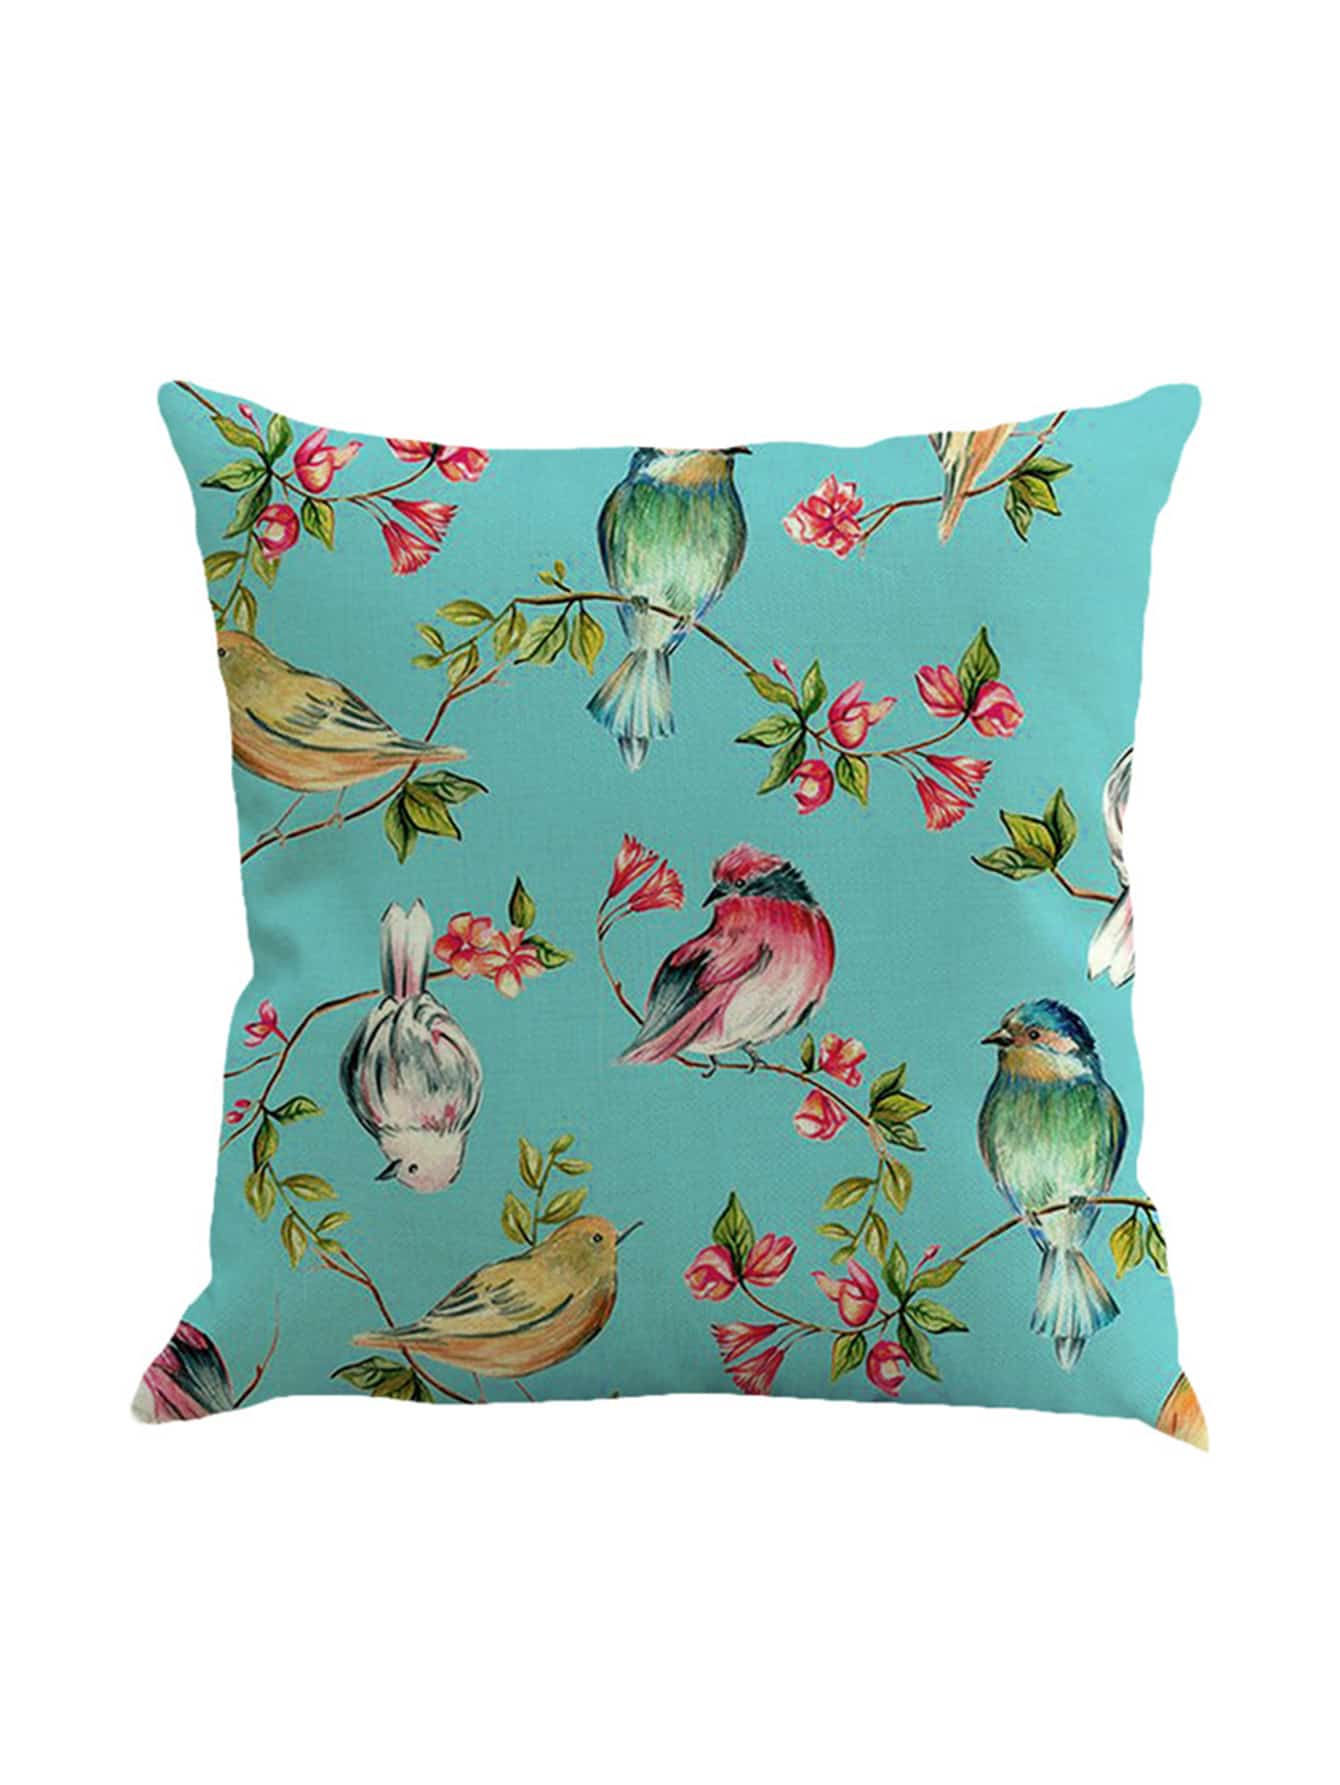 Bird Print Pillowcase Cover pug print pillowcase cover